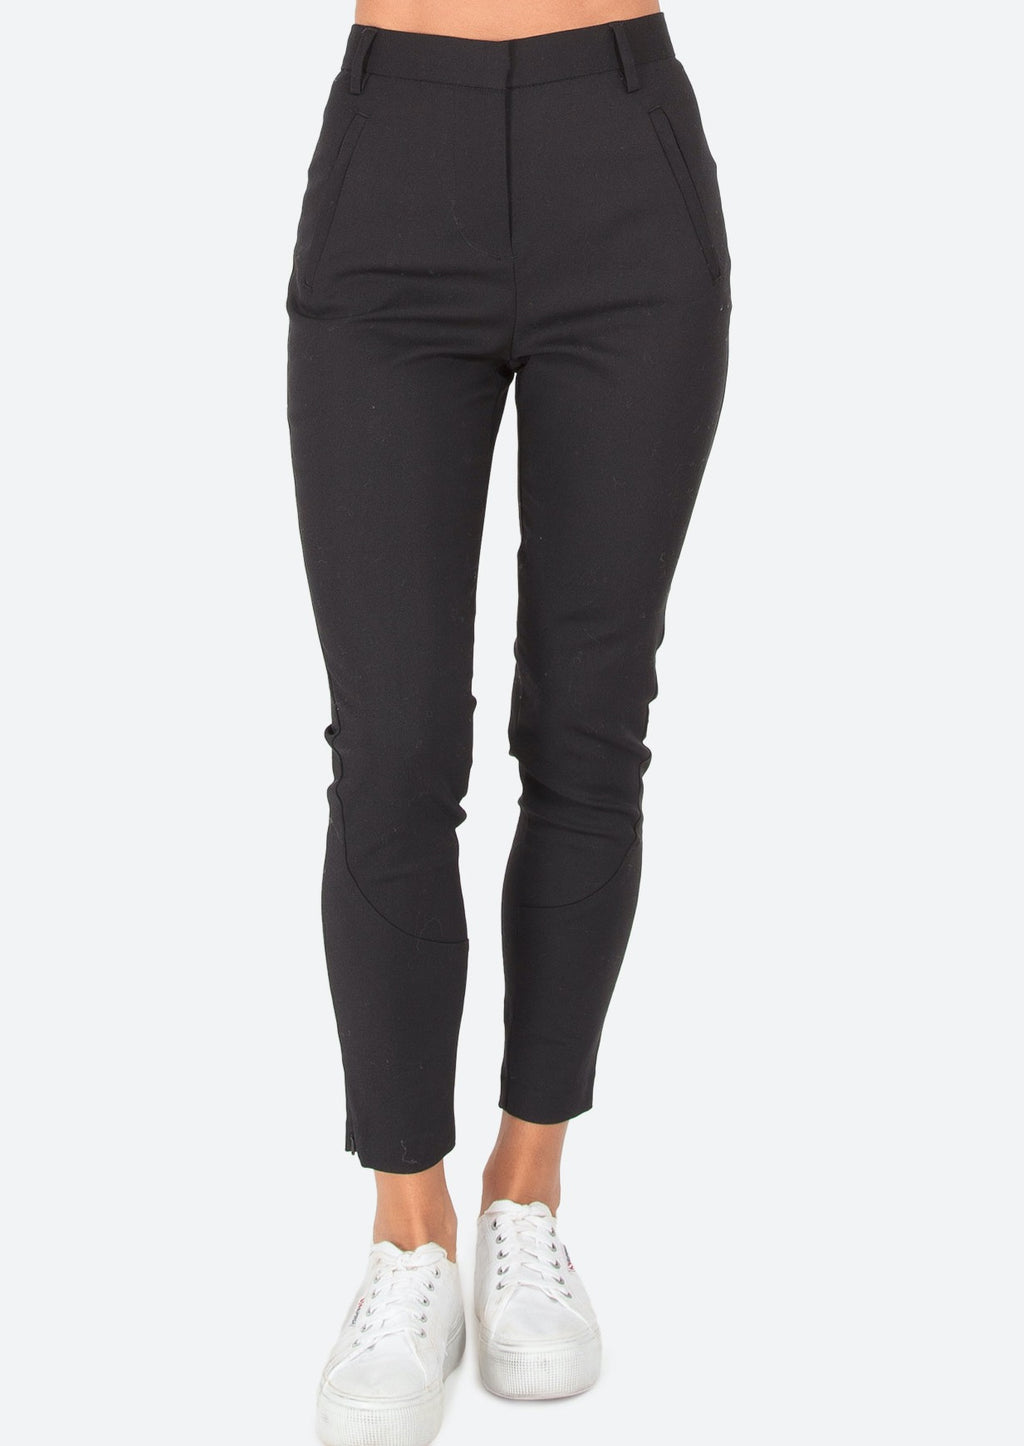 Nest Pants - Black, by Ridley  A super comfortable slight stretch pant that can be dressed up or down.  We love the streamlined features and 7/8th length for the perfect fit and maximum versatility.  Features:  7/8th leg length  Side zips at ankle for a slimline fit  Stretch for comfort and shape  Side pockets with zips for a streamlined look  Hook and bar closure at waist